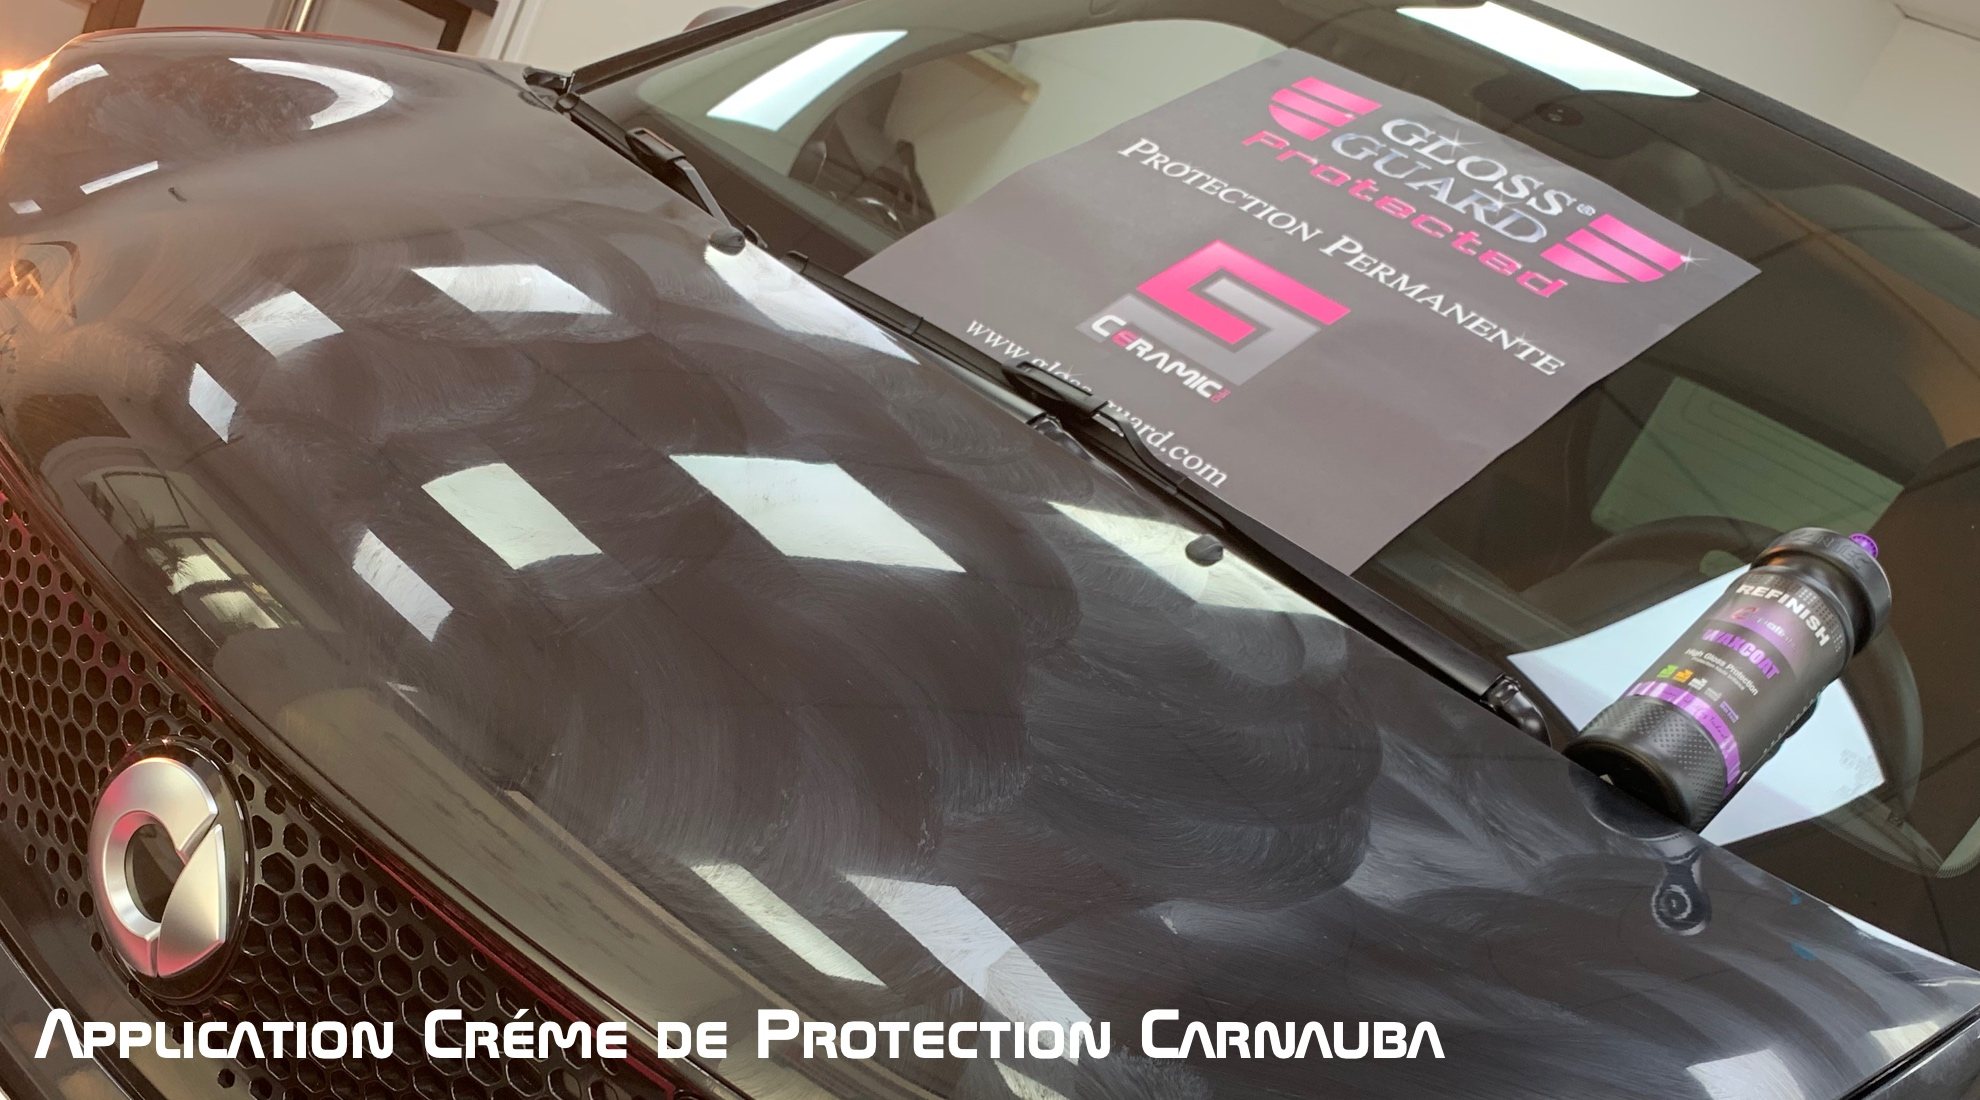 Smart-wax-coat-protection-carnauba